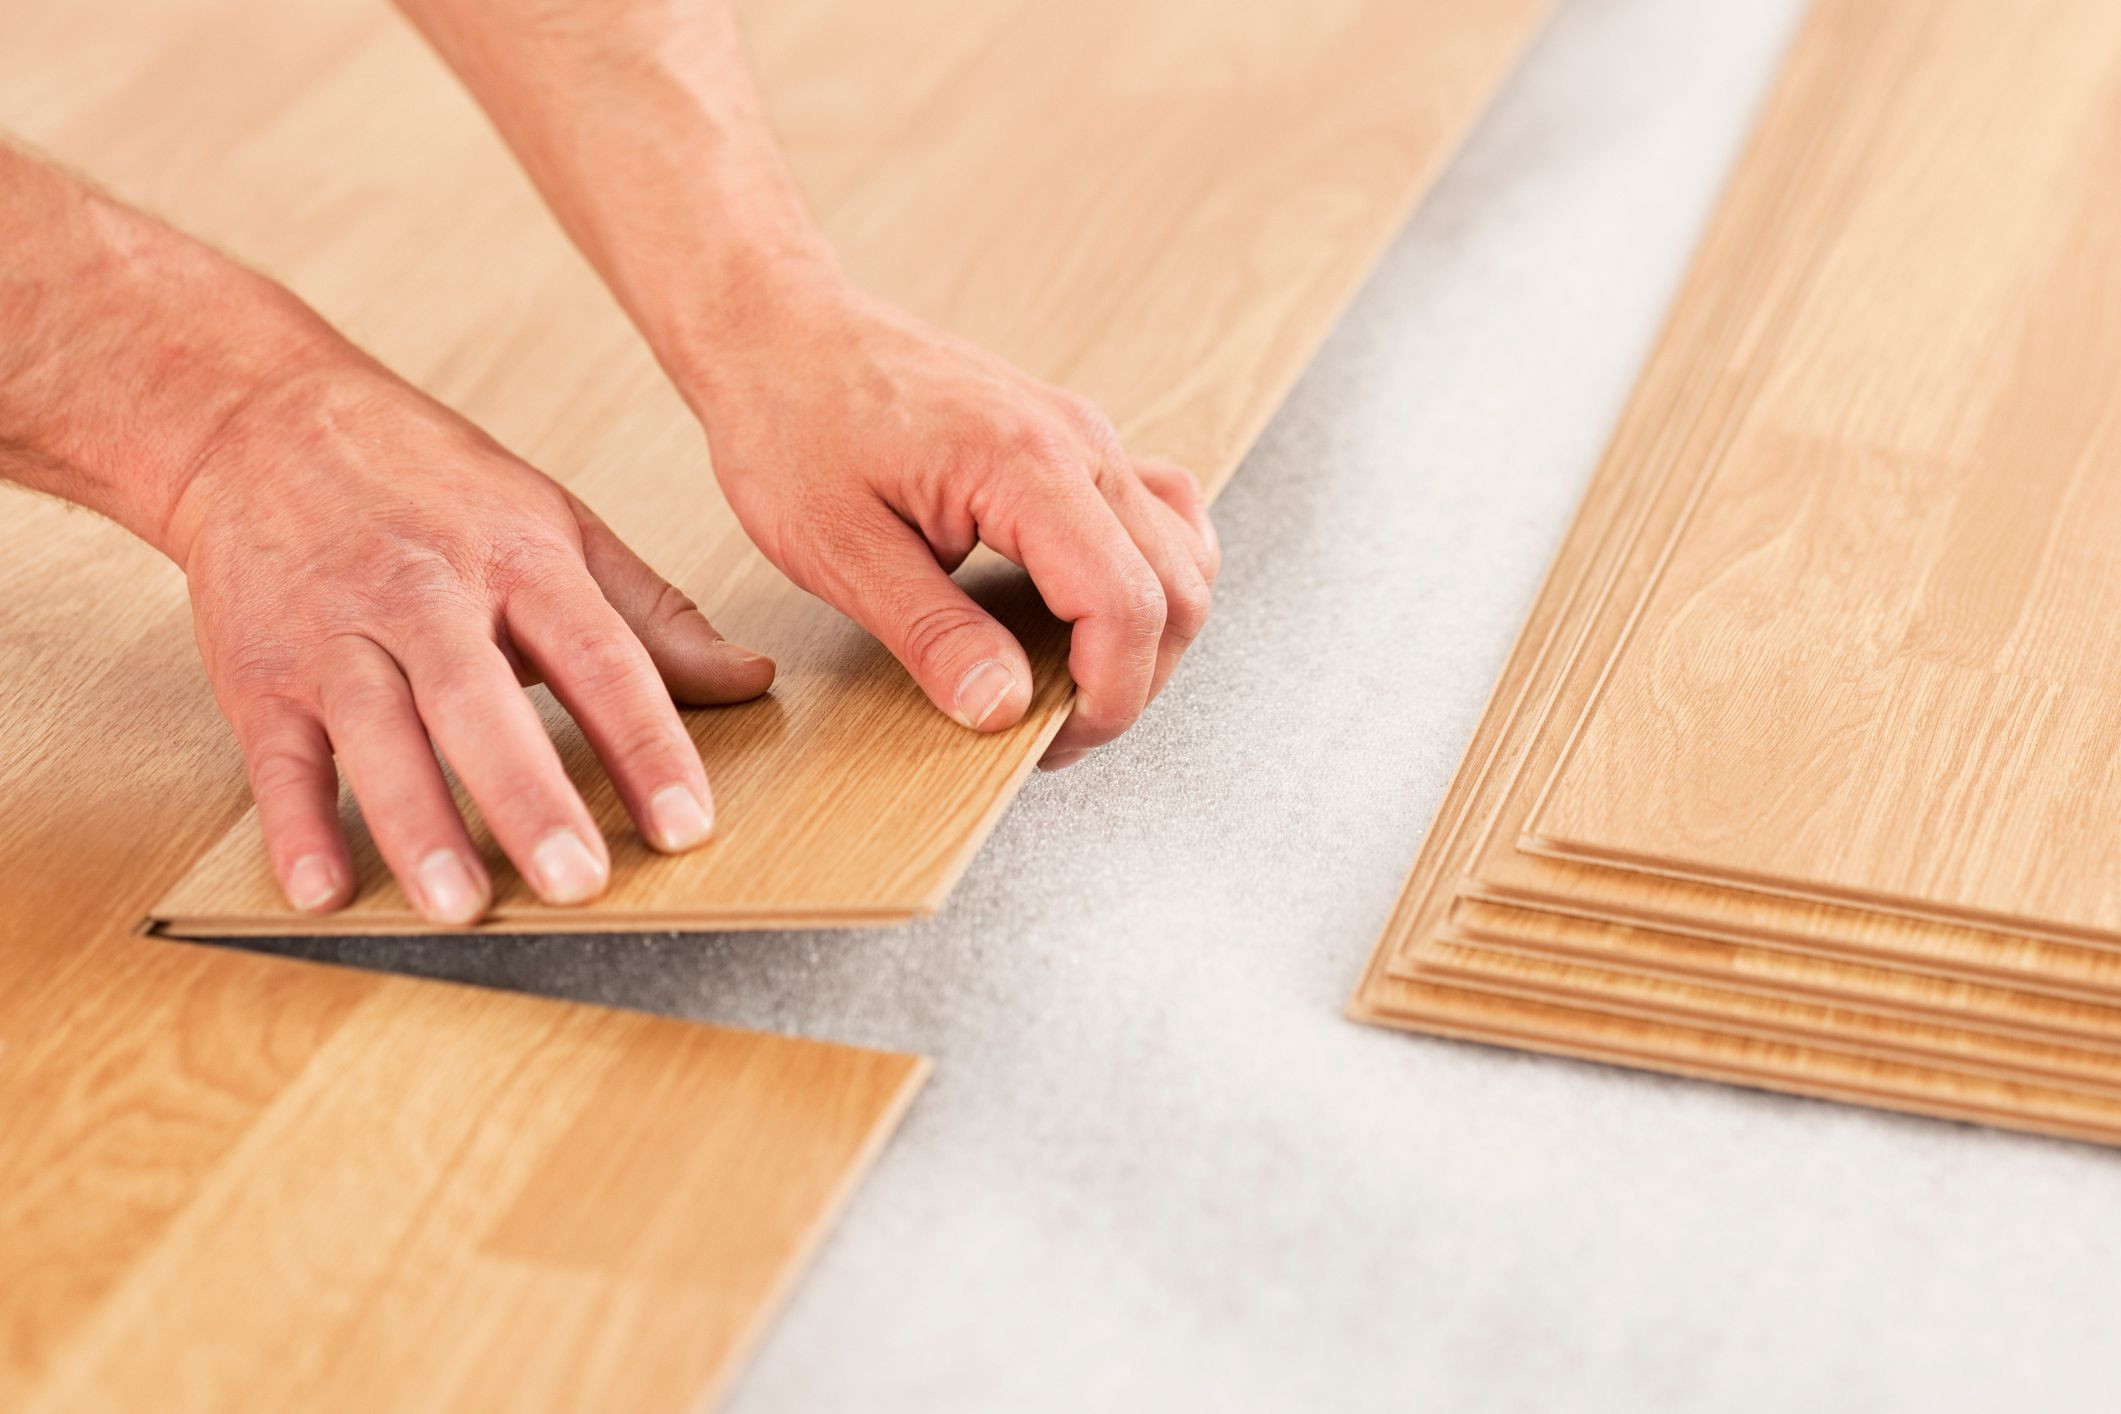 Can You Glue Hardwood Floor to Concrete Of Laminate Underlayment Pros and Cons In Laminate Floor Install Gettyimages 154961561 588816495f9b58bdb3da1a02